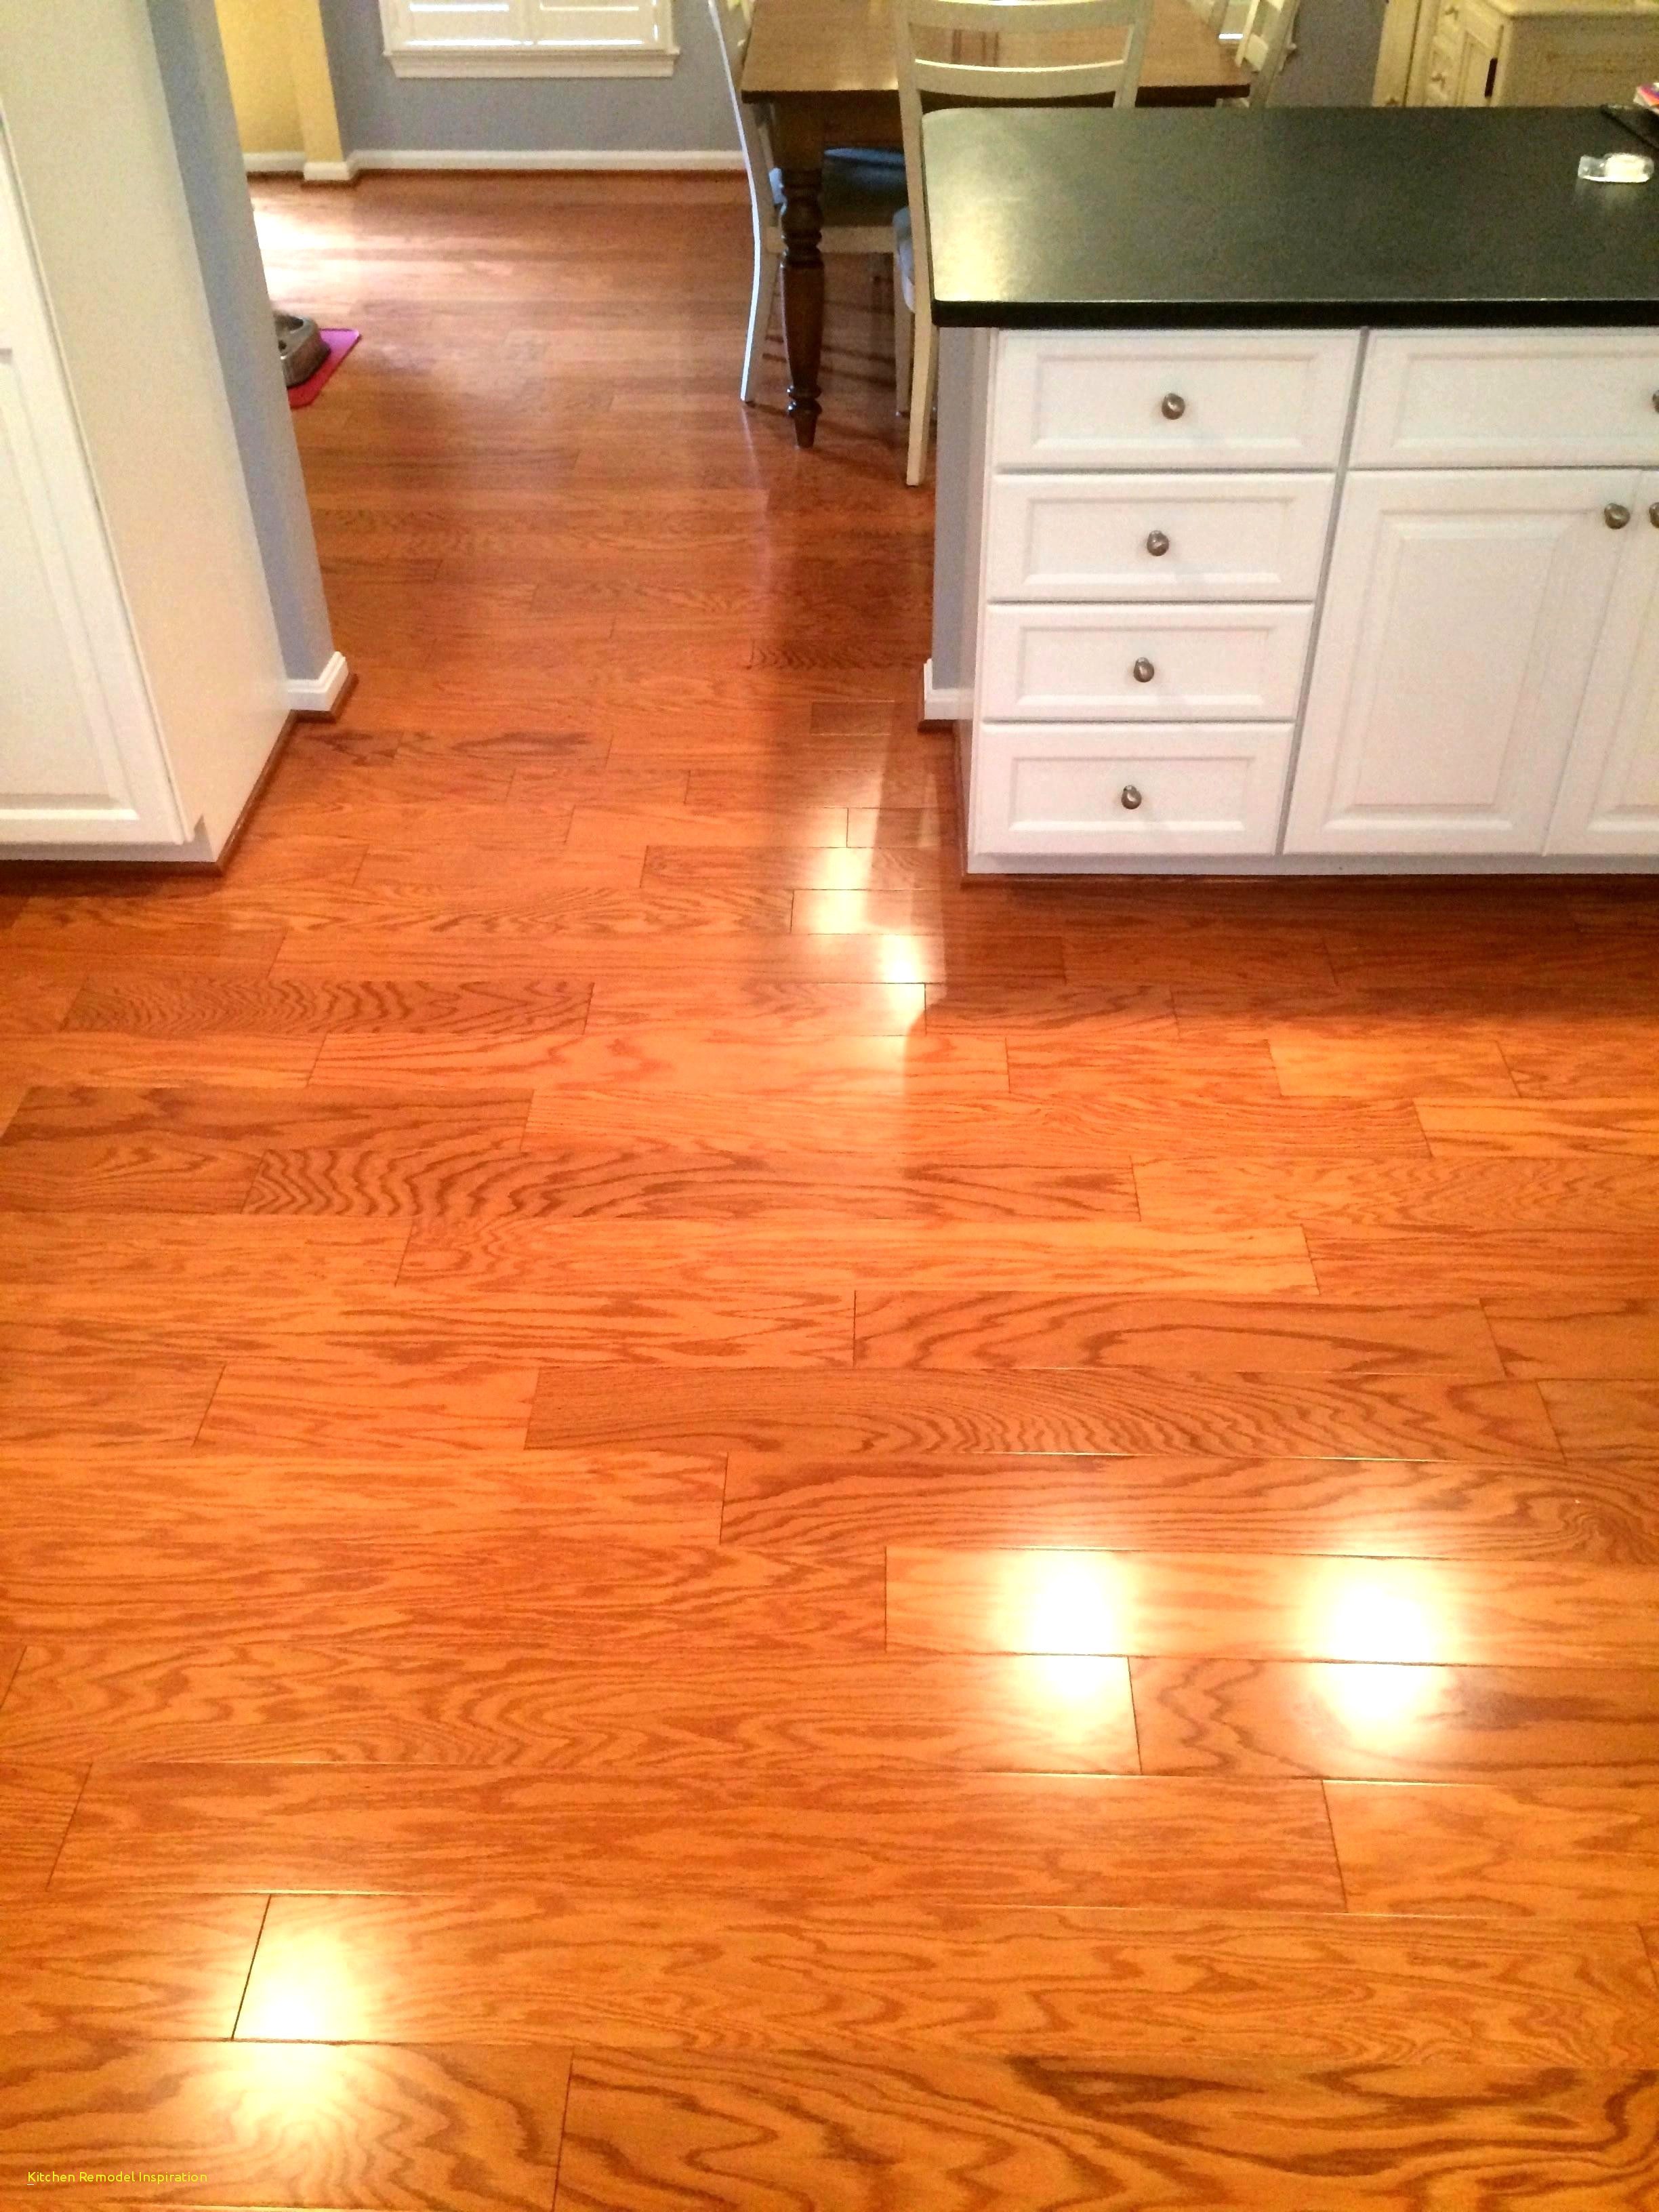 light colored hardwood floors of laminate flooring sale near me transition from tile to wood floors with regard to kitchen hardwood floors fabulous where to hardwood flooring inspirational 0d grace place barnegat